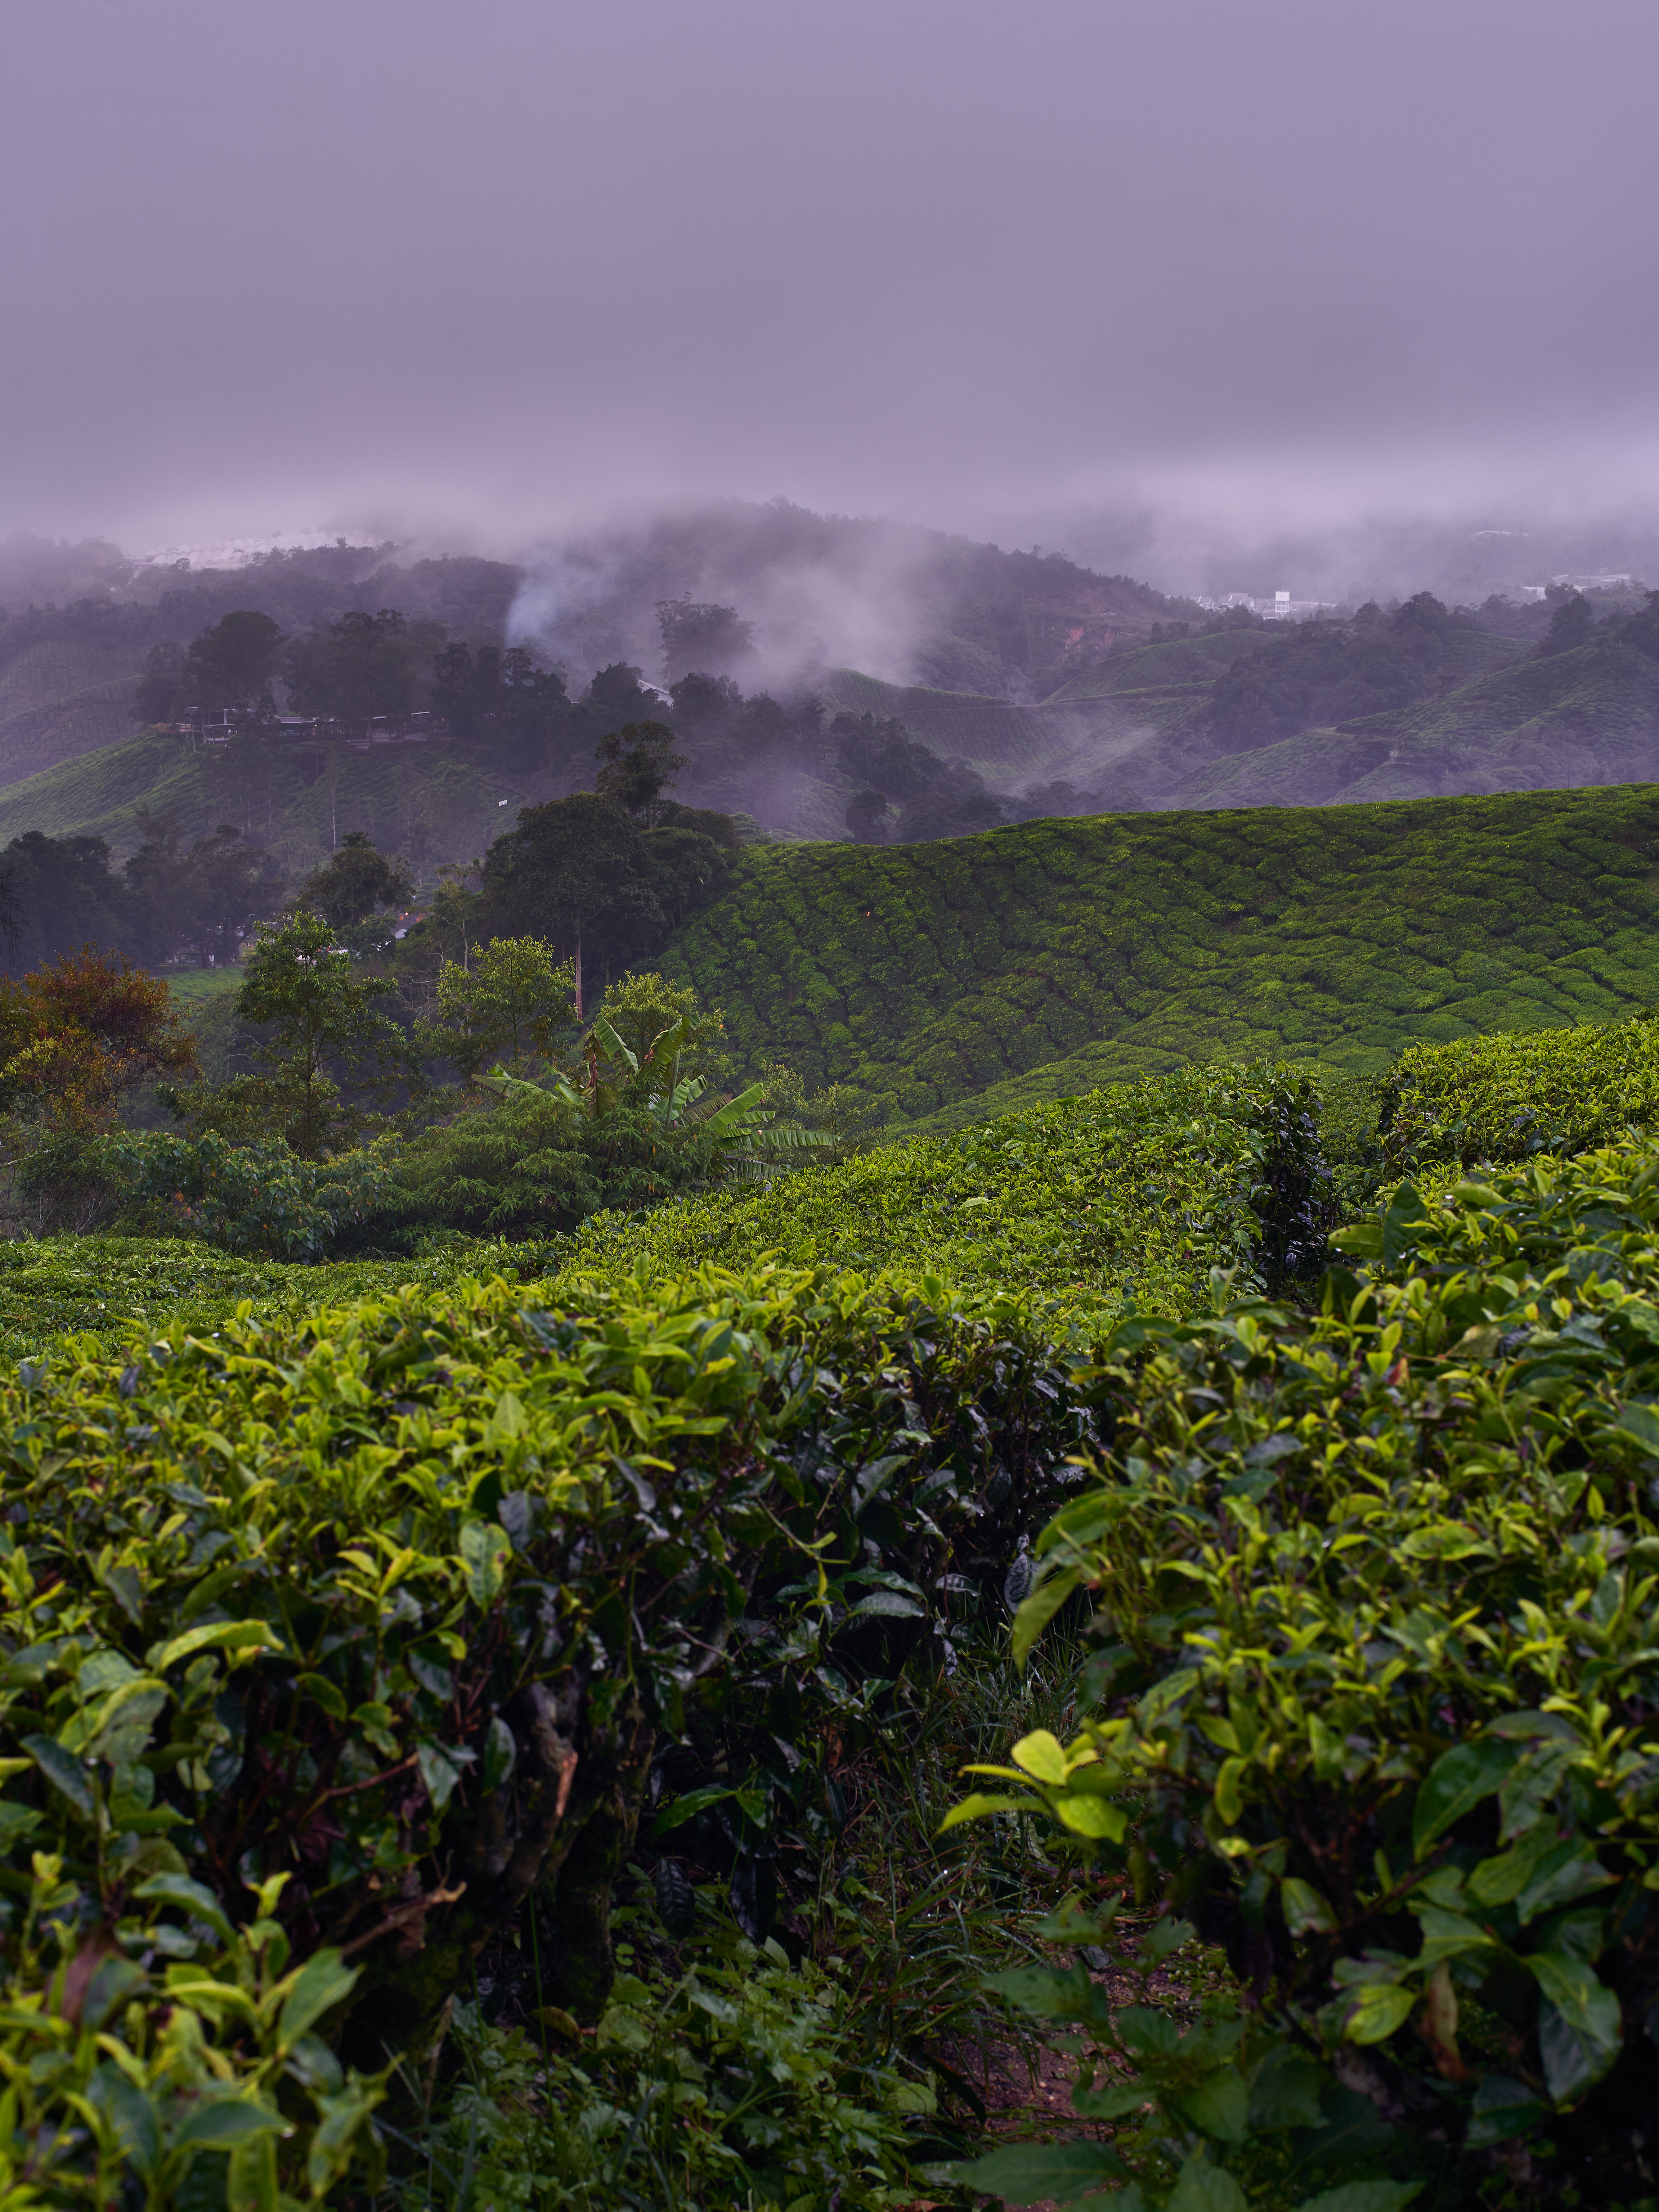 74464 download wallpaper Nature, Bush, Fog, Hills, Plantation screensavers and pictures for free